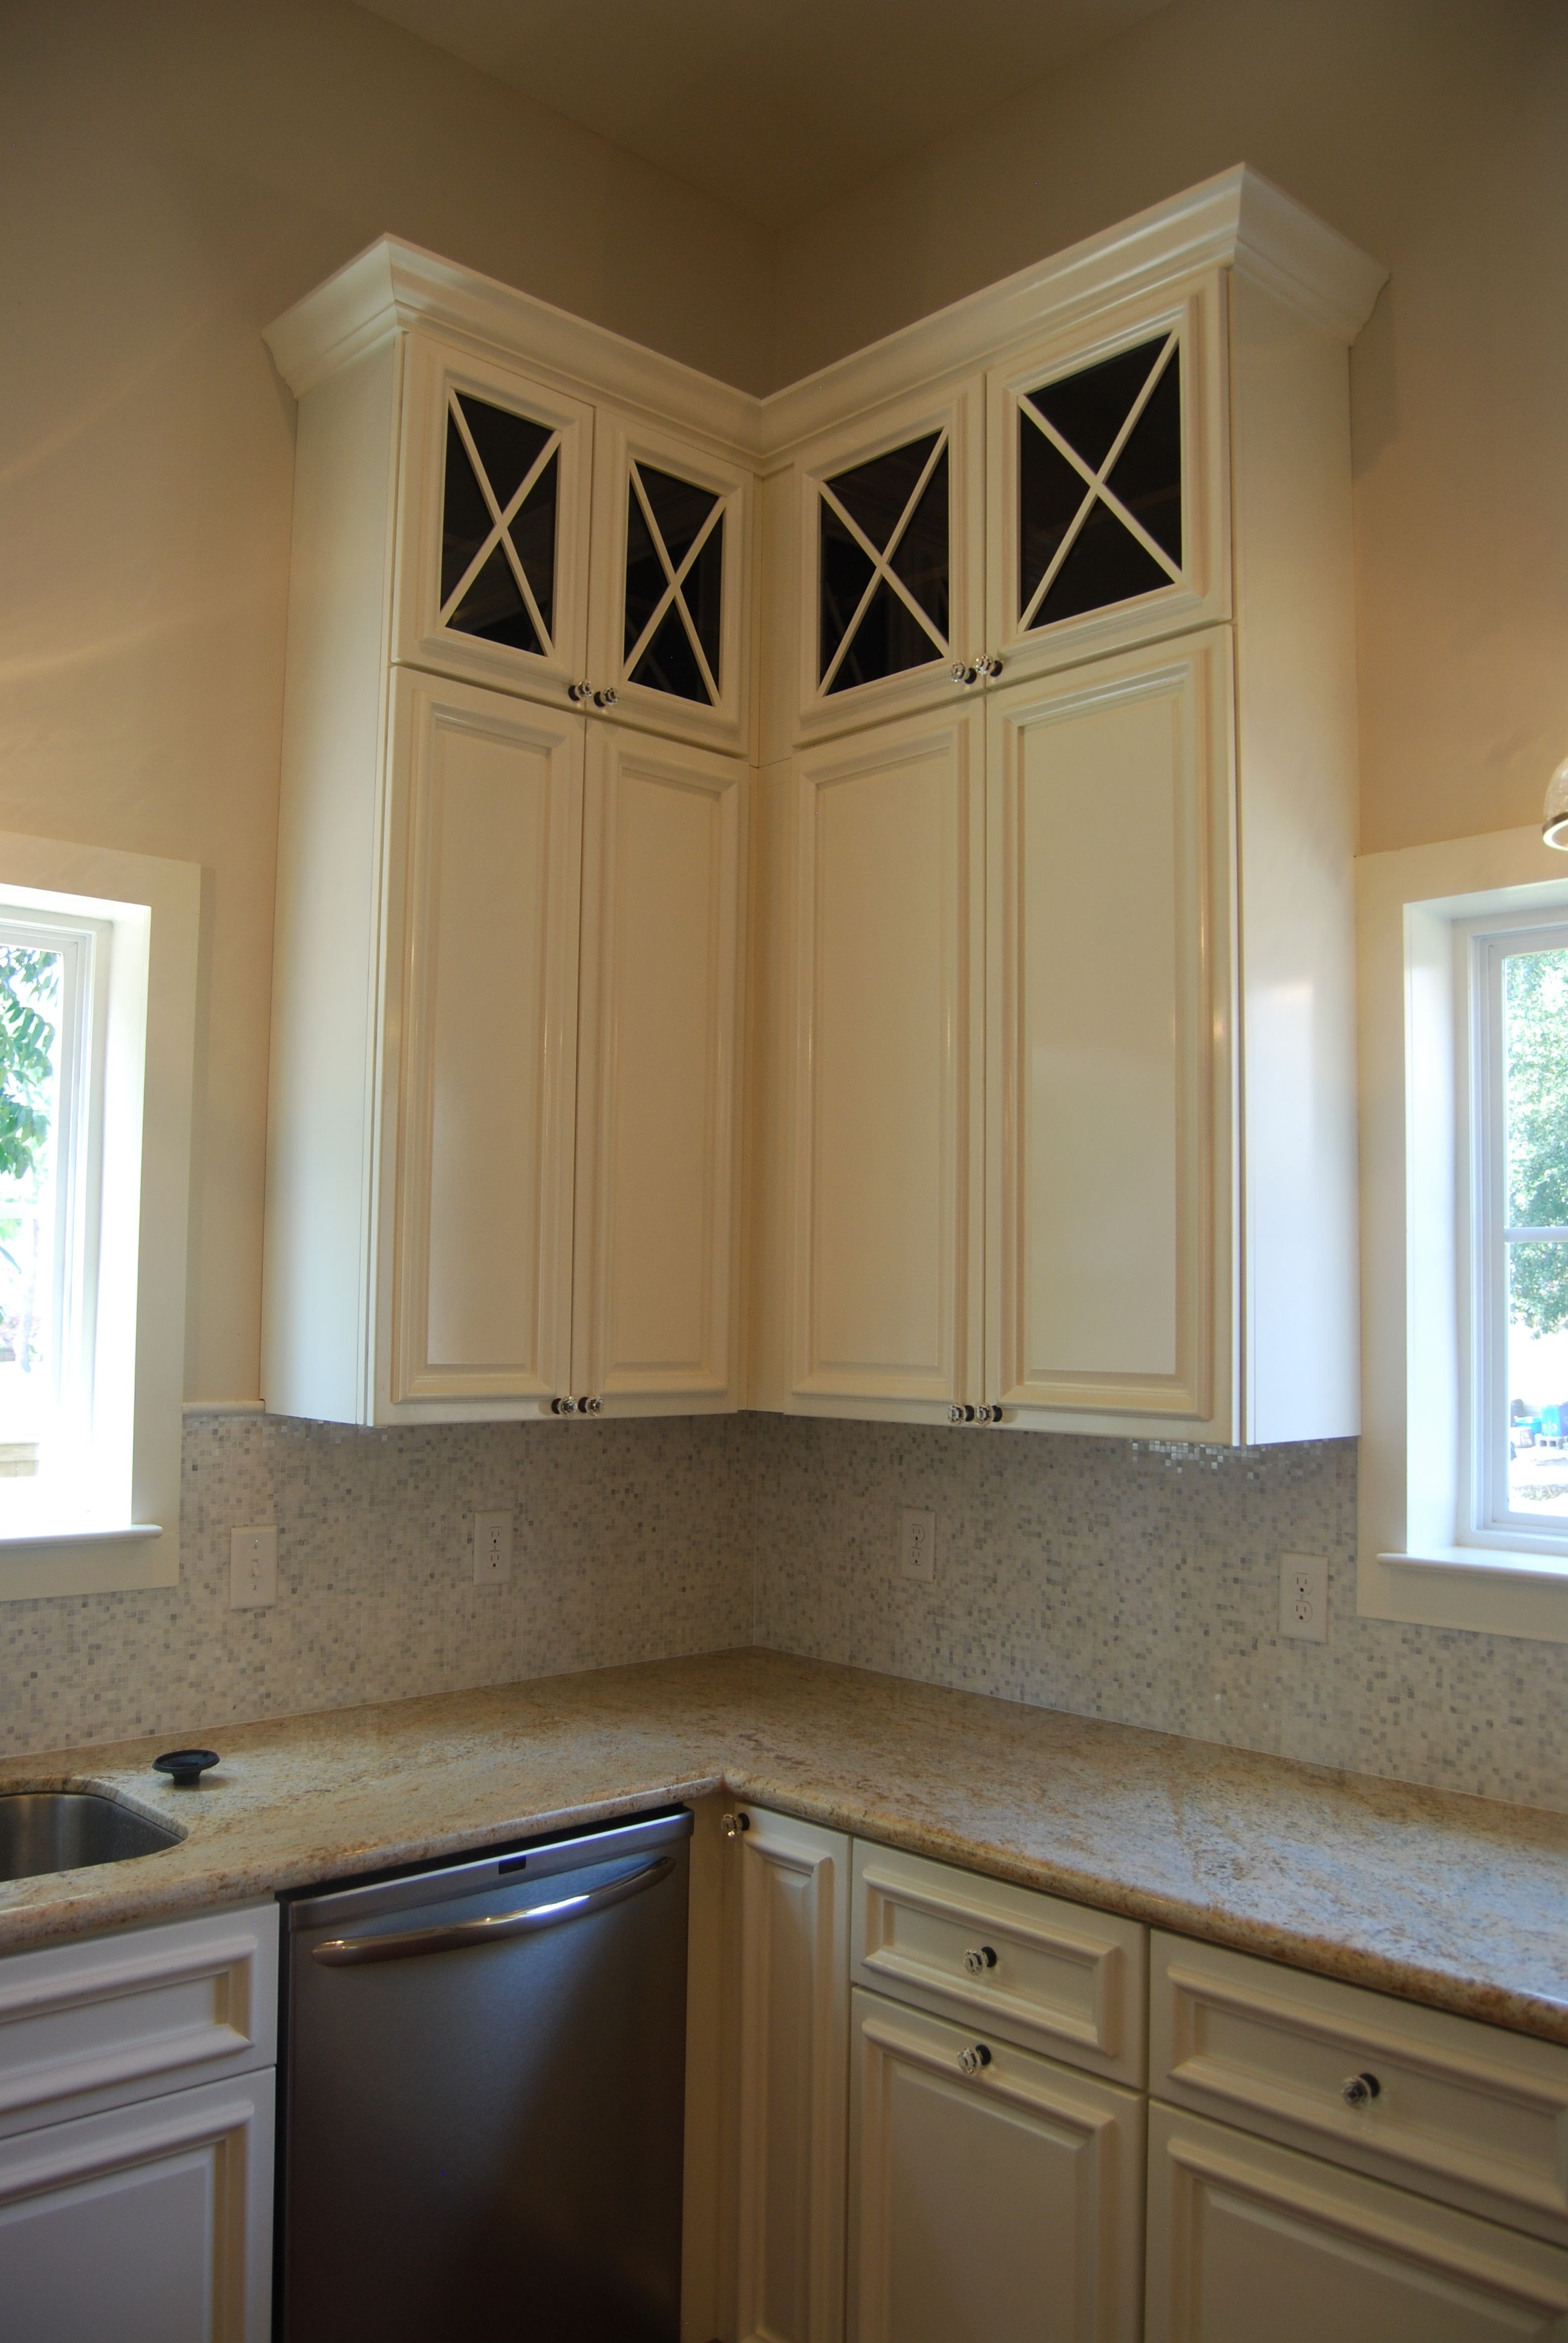 Custom Designed And Built Cabinets Granite Countertops Center